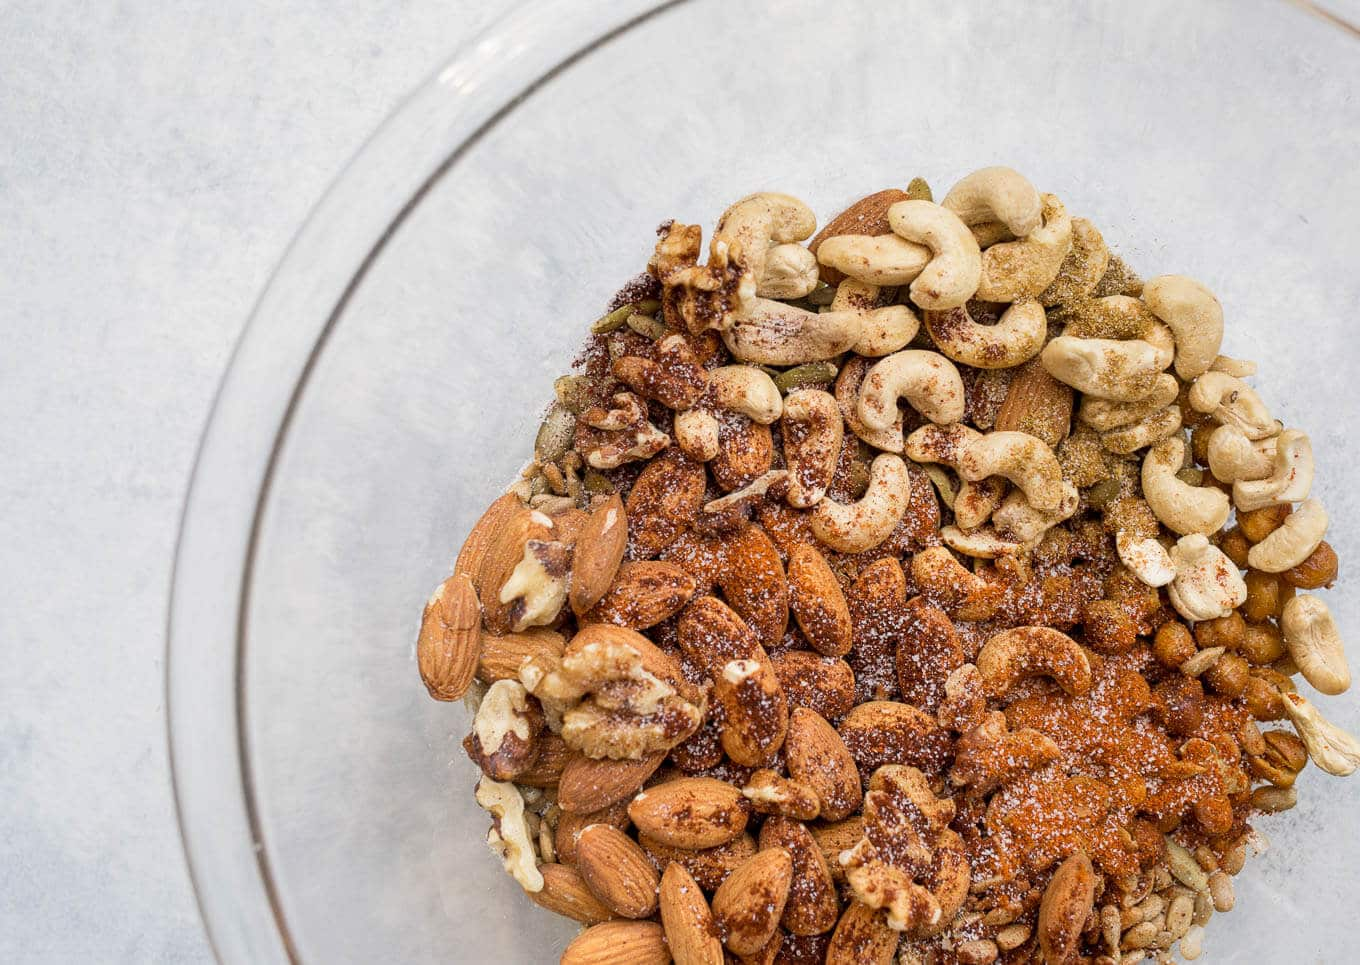 This Spicy Roasted Chickpea Snack Mix is loaded with roasted chickpeas, almonds, cashews, walnuts, pepitas, and sunflower seeds coated with a homemade spicy seasoning mix. Gluten-free, vegan.